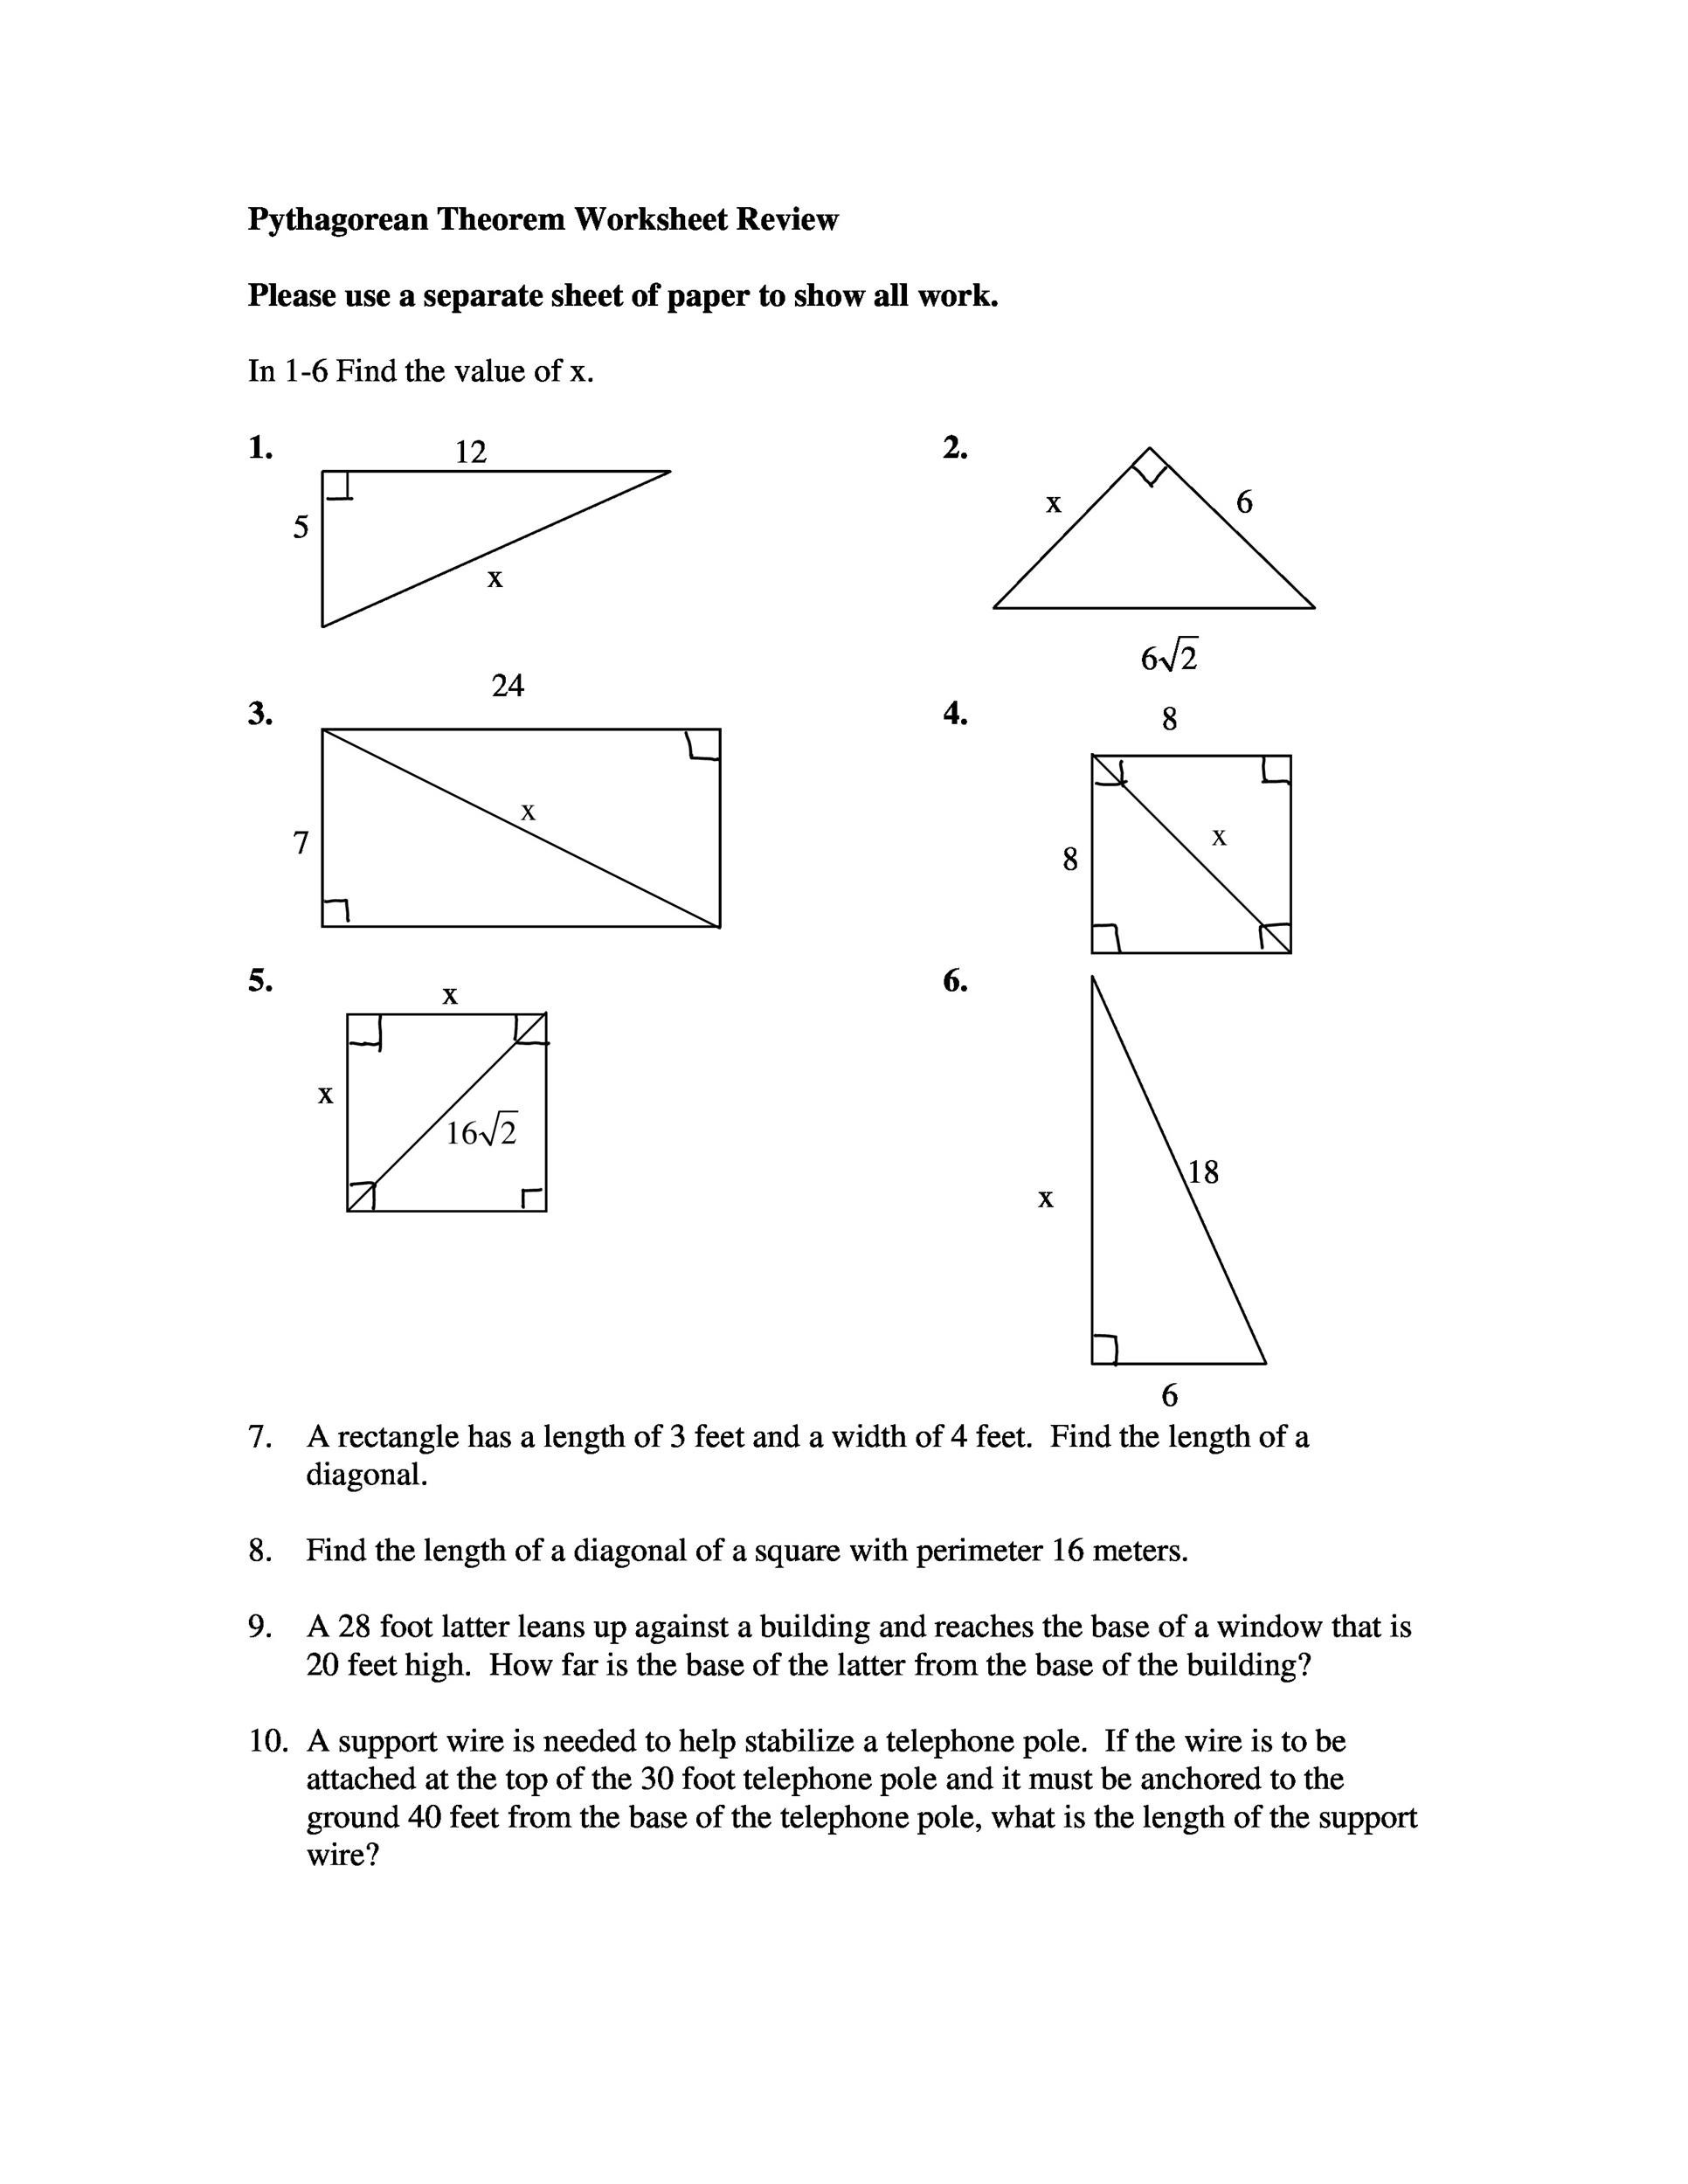 48 Pythagorean Theorem Worksheet With Answers Word Pdf